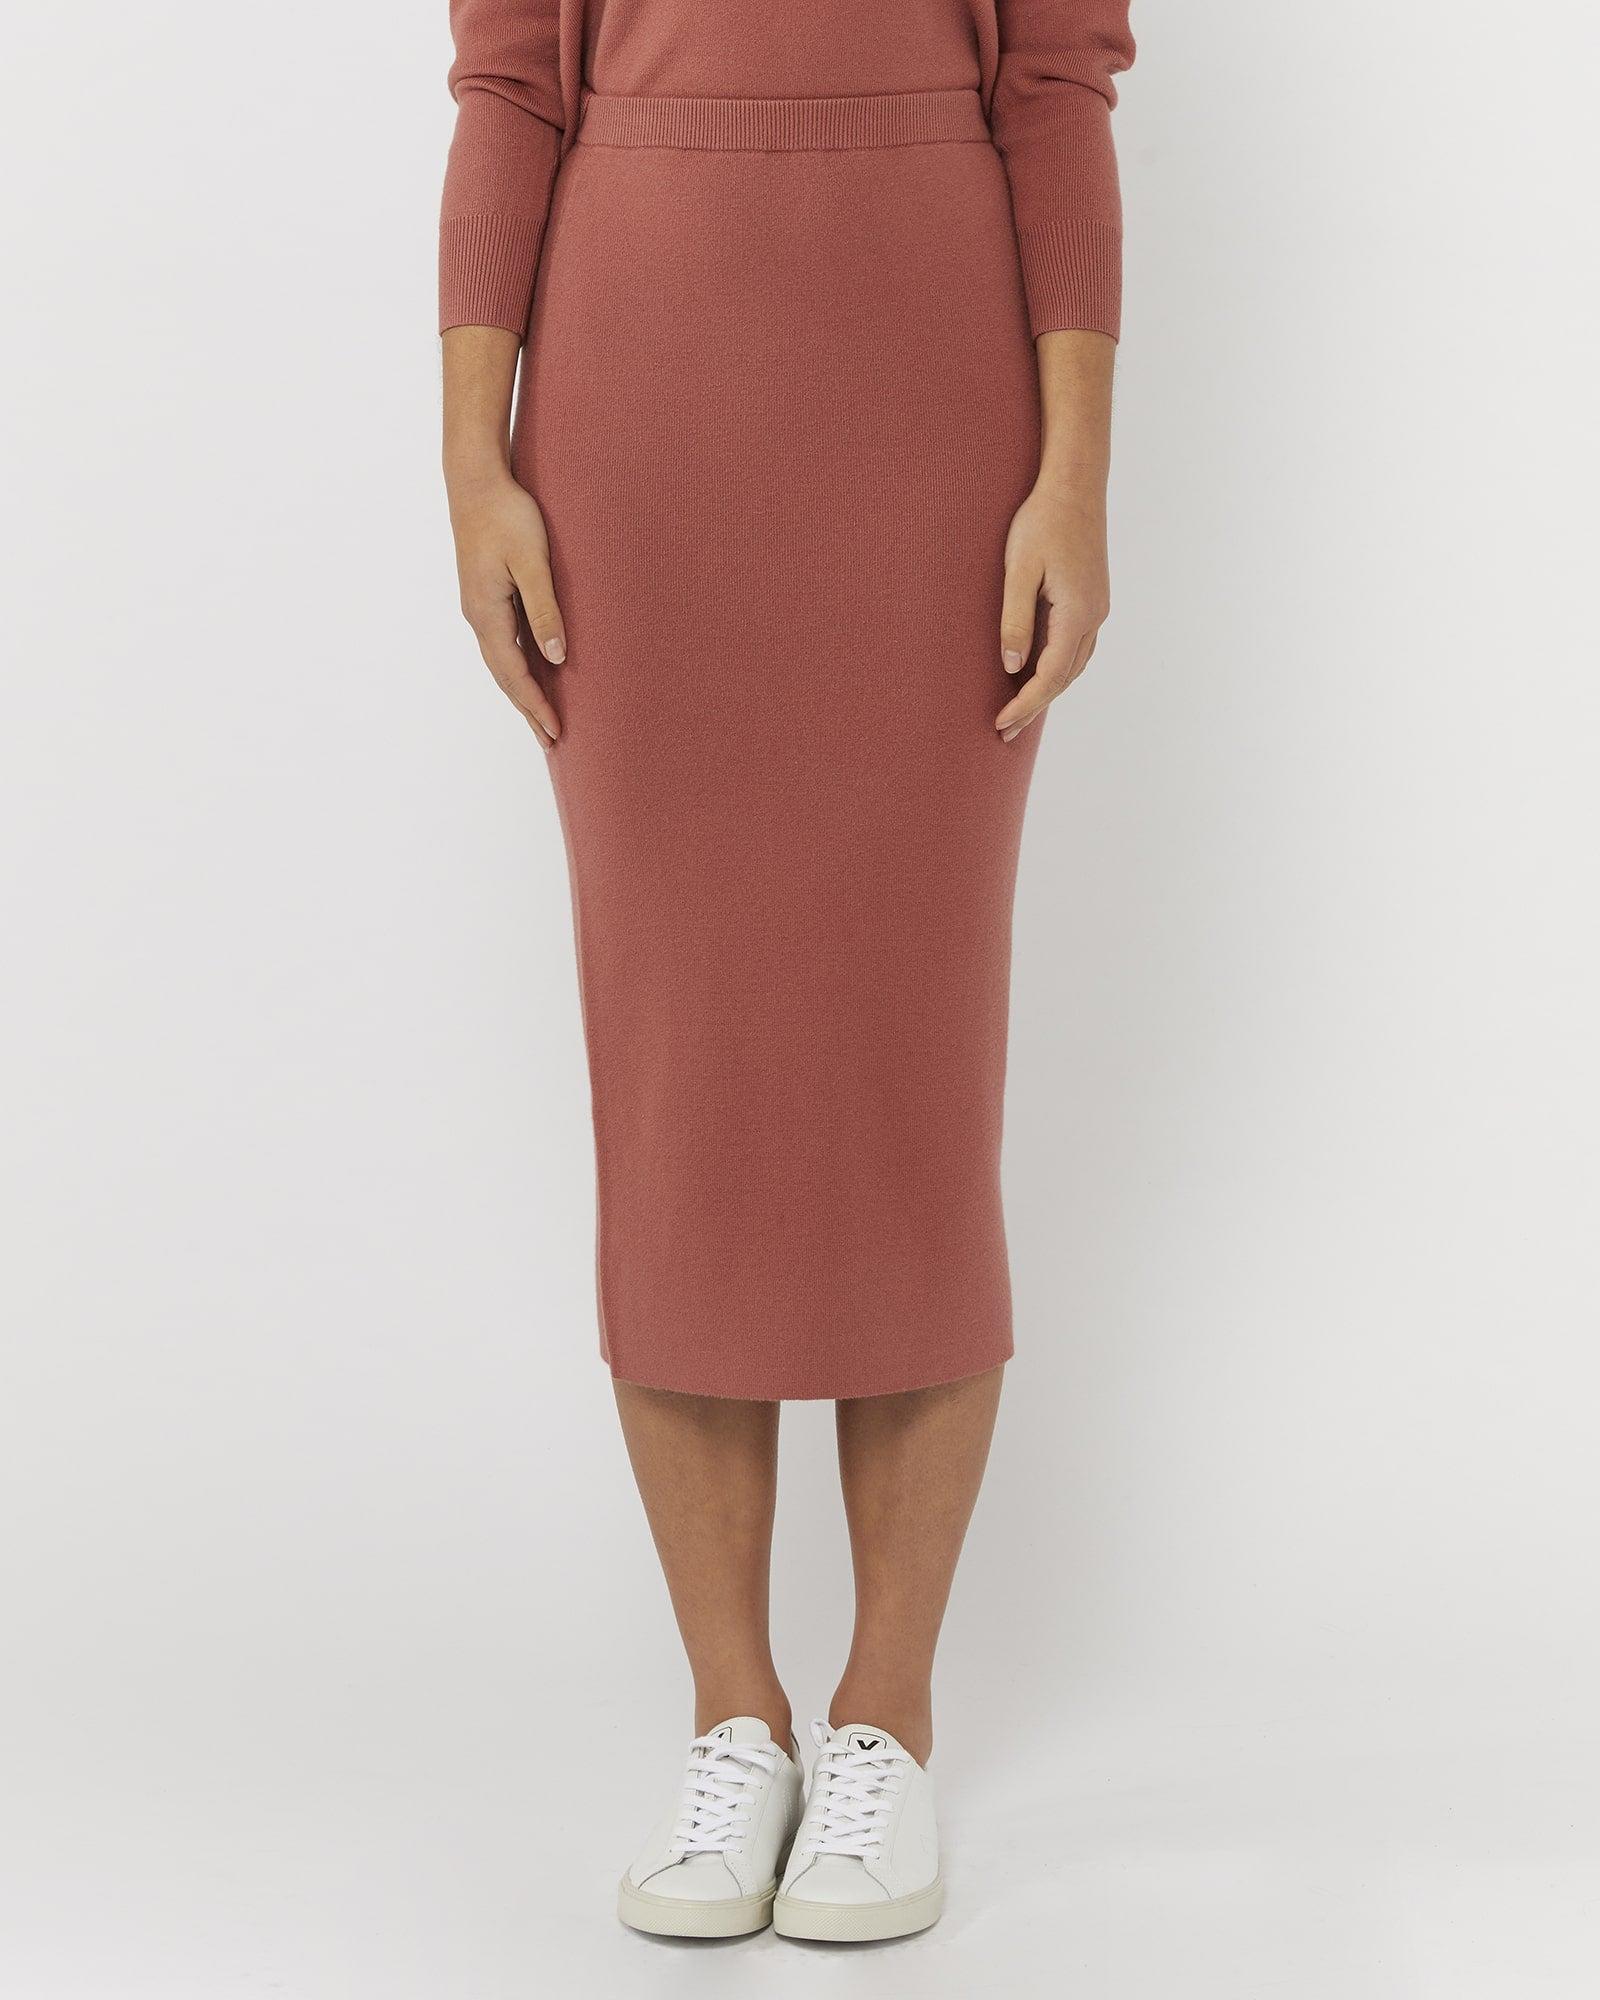 ALL I WANT SKIRT - DEEP BLUSH